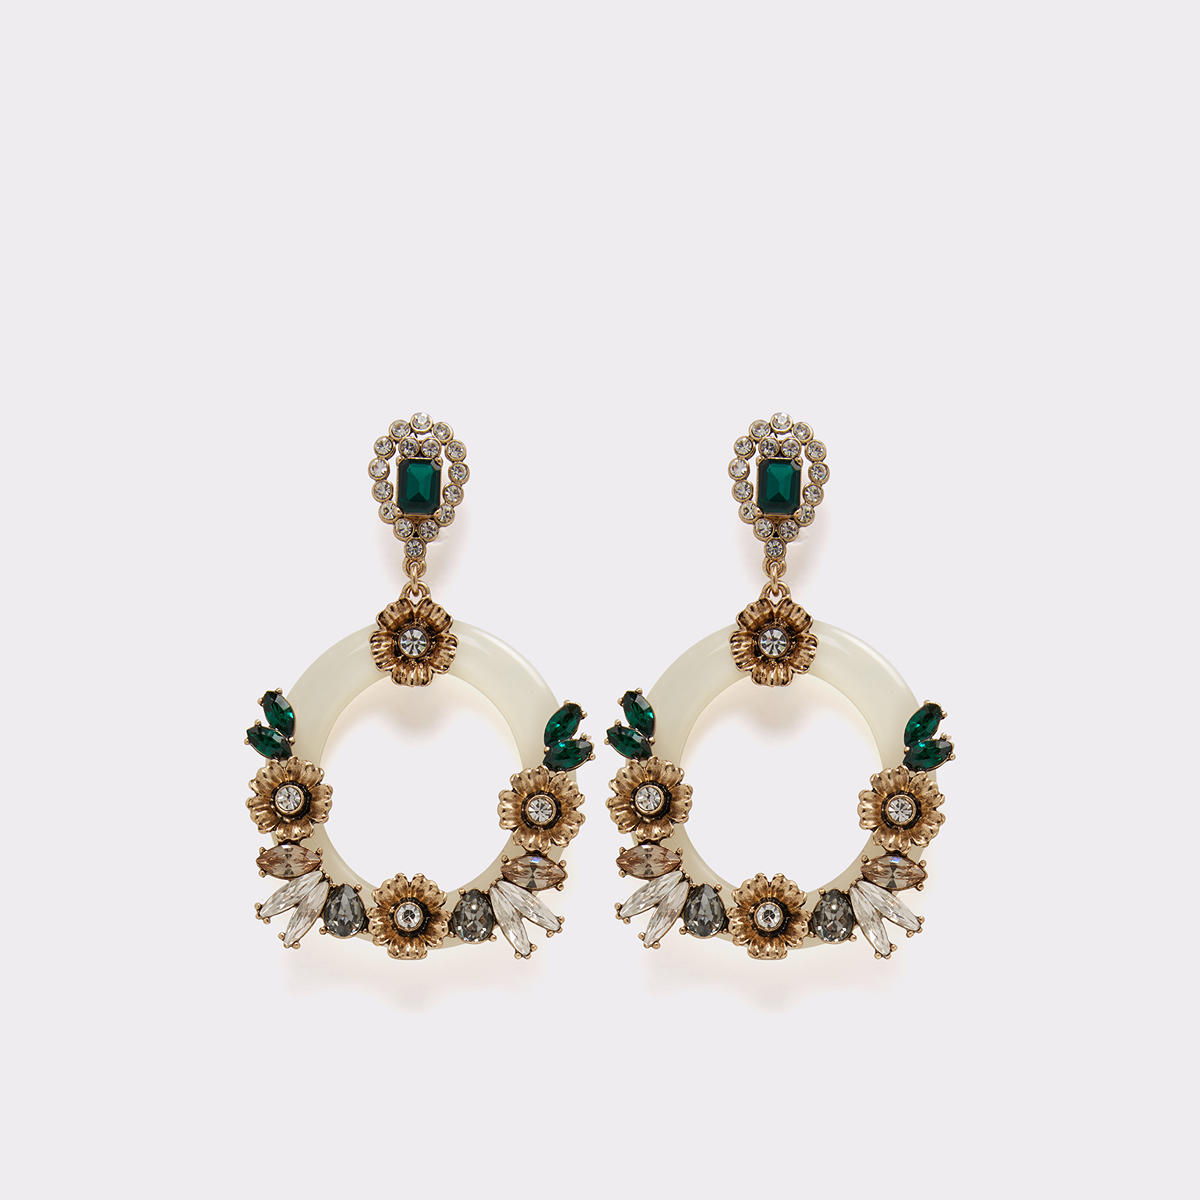 Roose Medium Green Women's Earrings | ALDO US at Aldo Shoes in Victor, NY | Tuggl